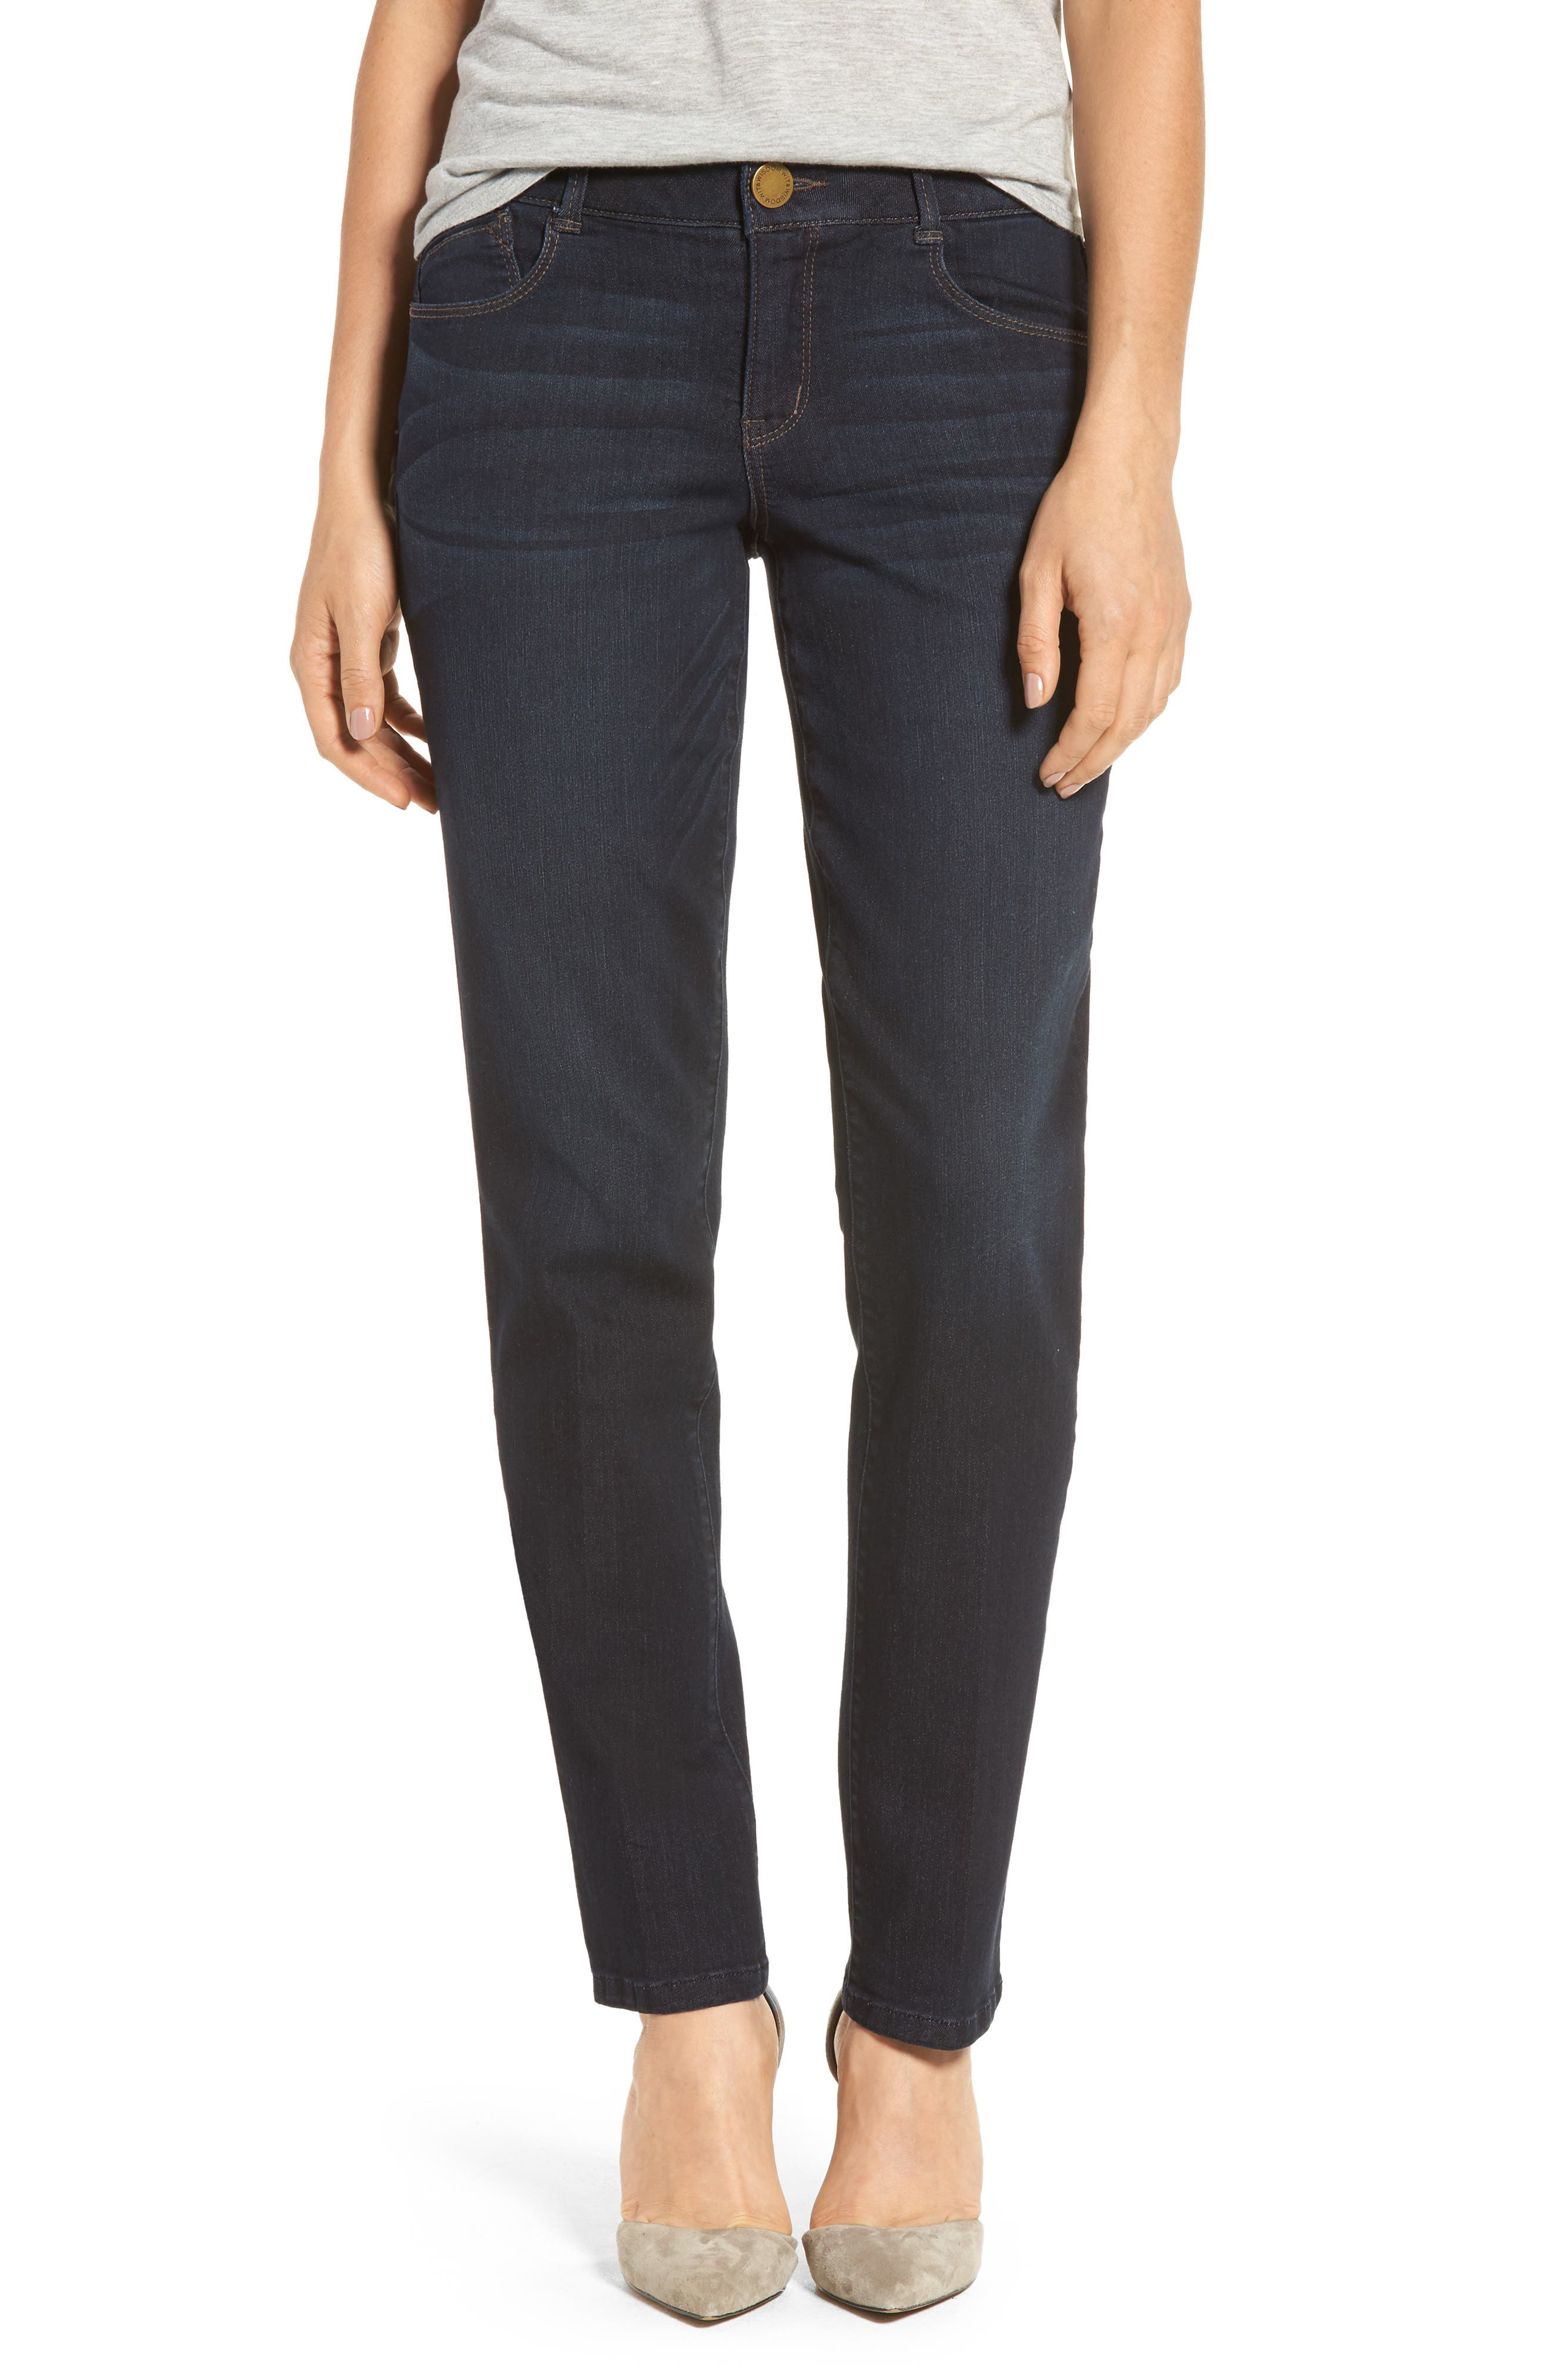 Alternate Image 1 Selected - Wit & Wisdom Ab-solution Straight Leg Jeans (Regular & Petite) (Nordstrom Exclusive)